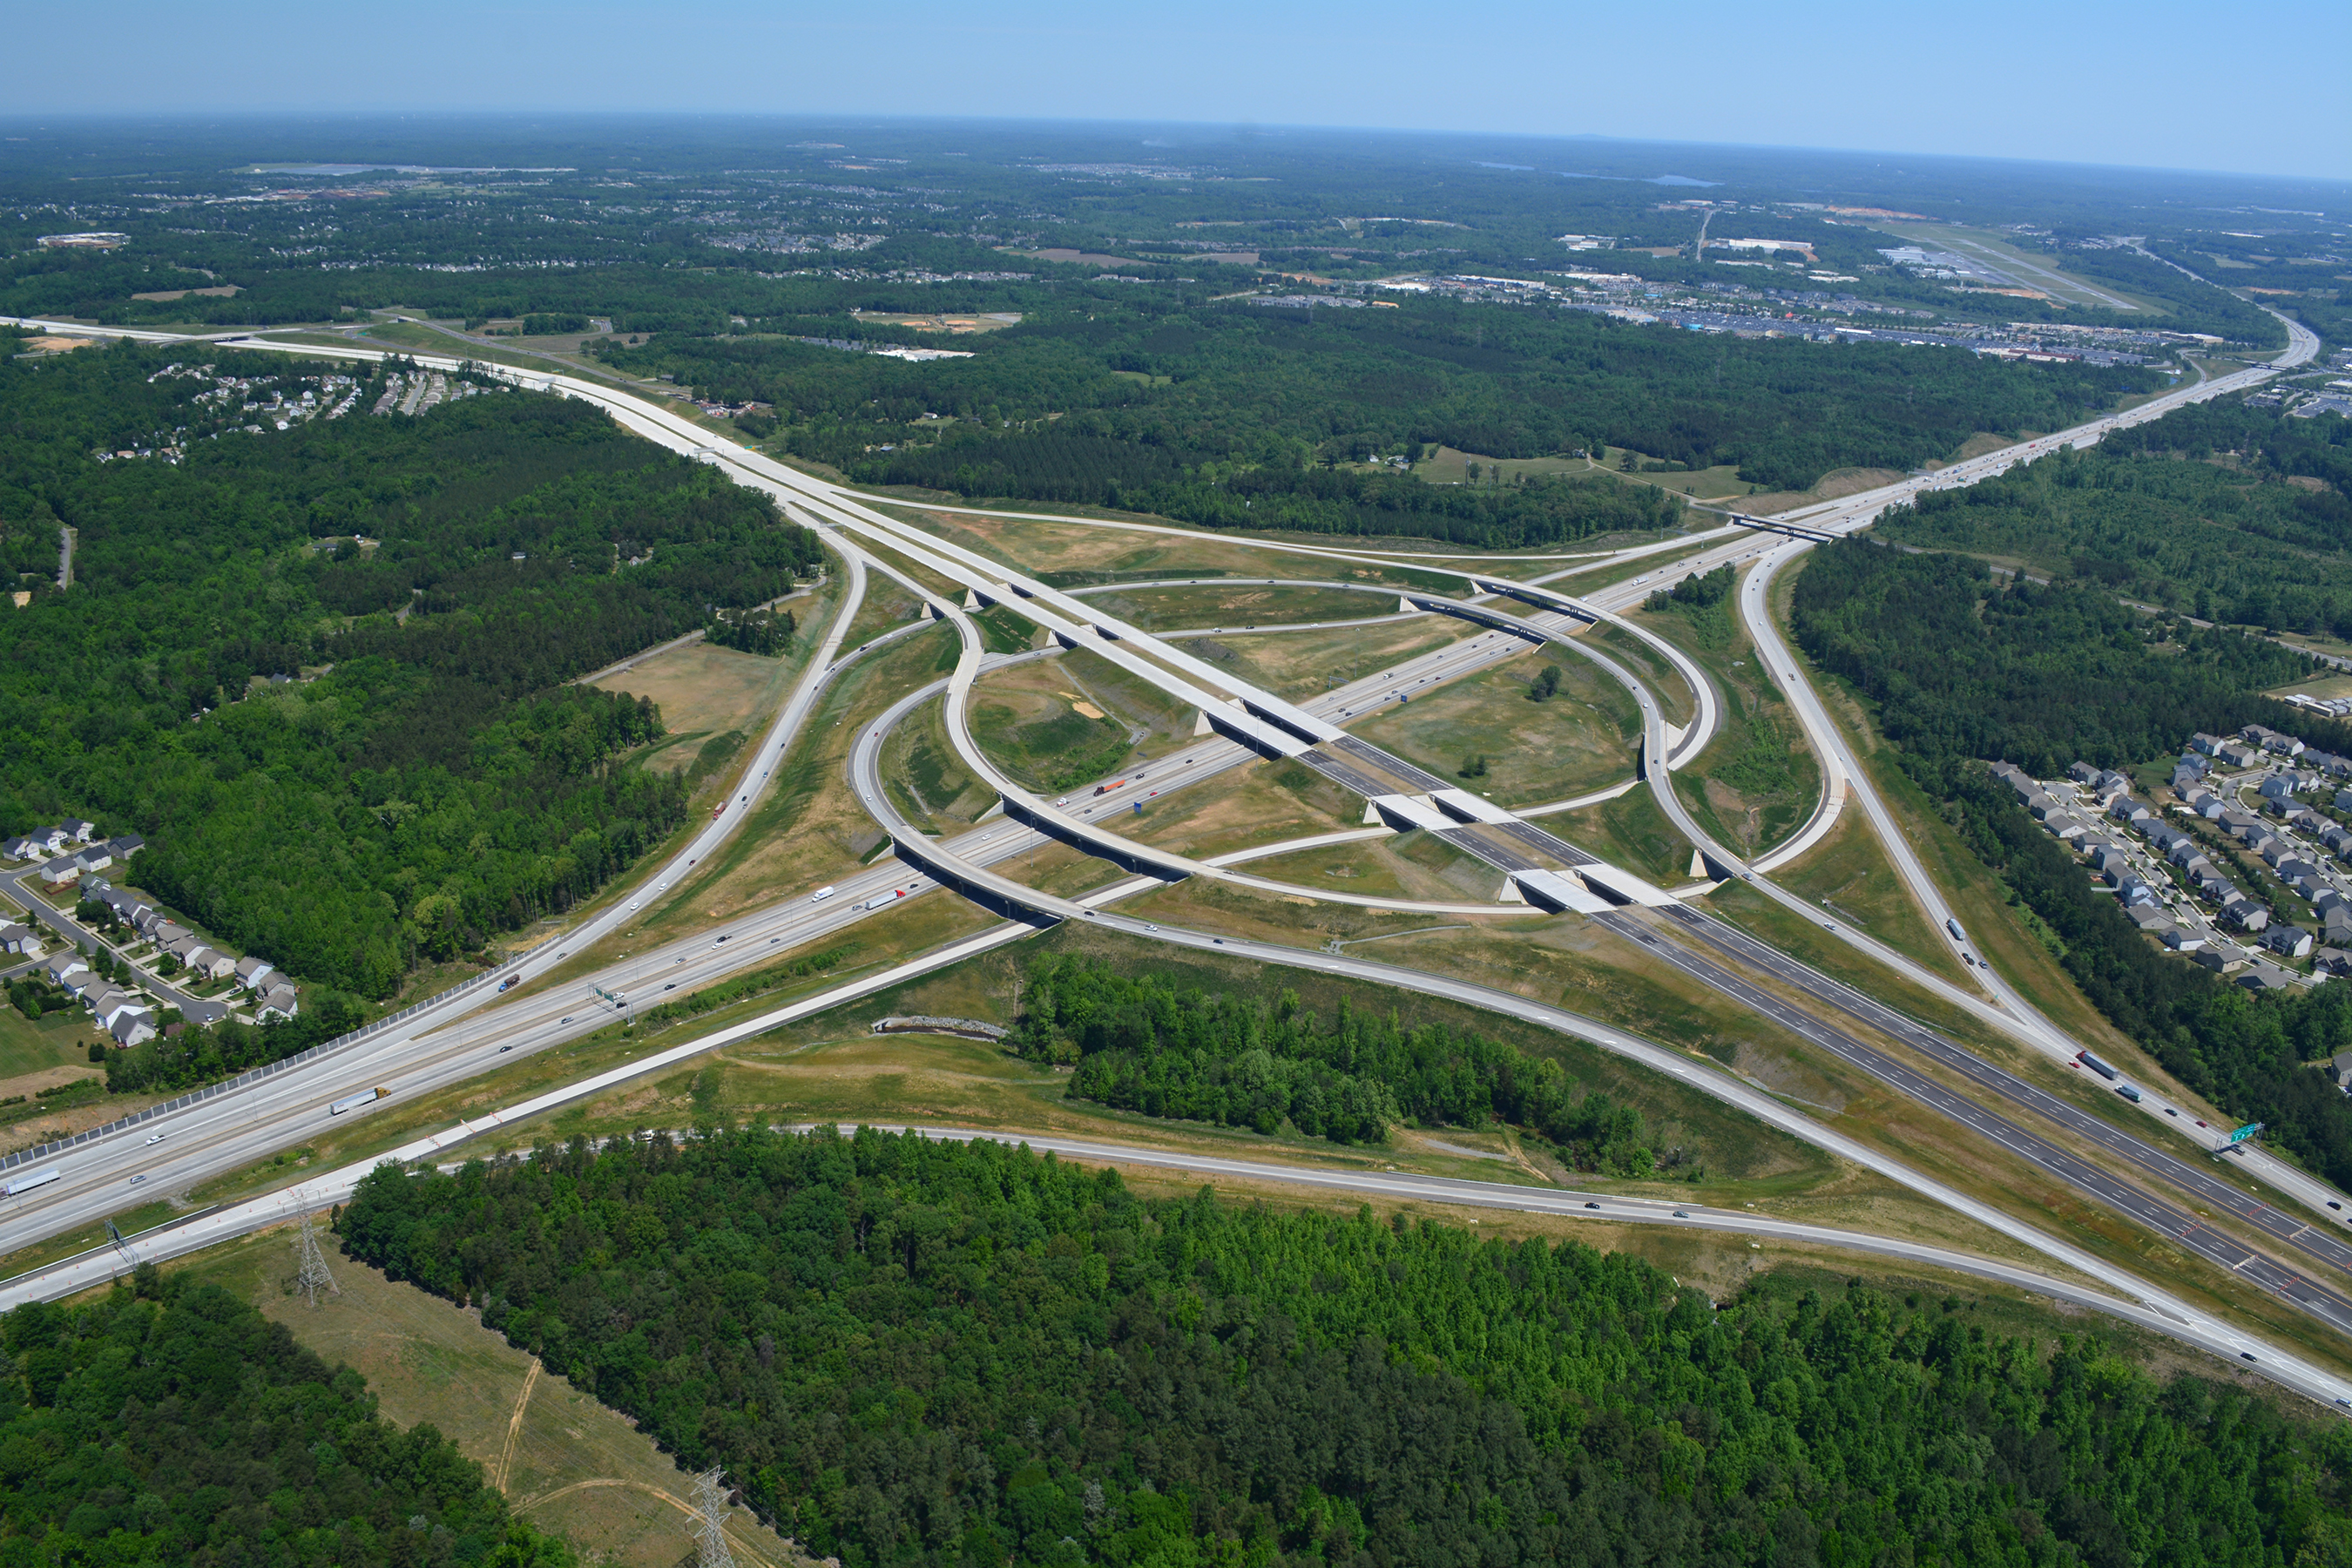 I-485/I-85 Turbine Interchange